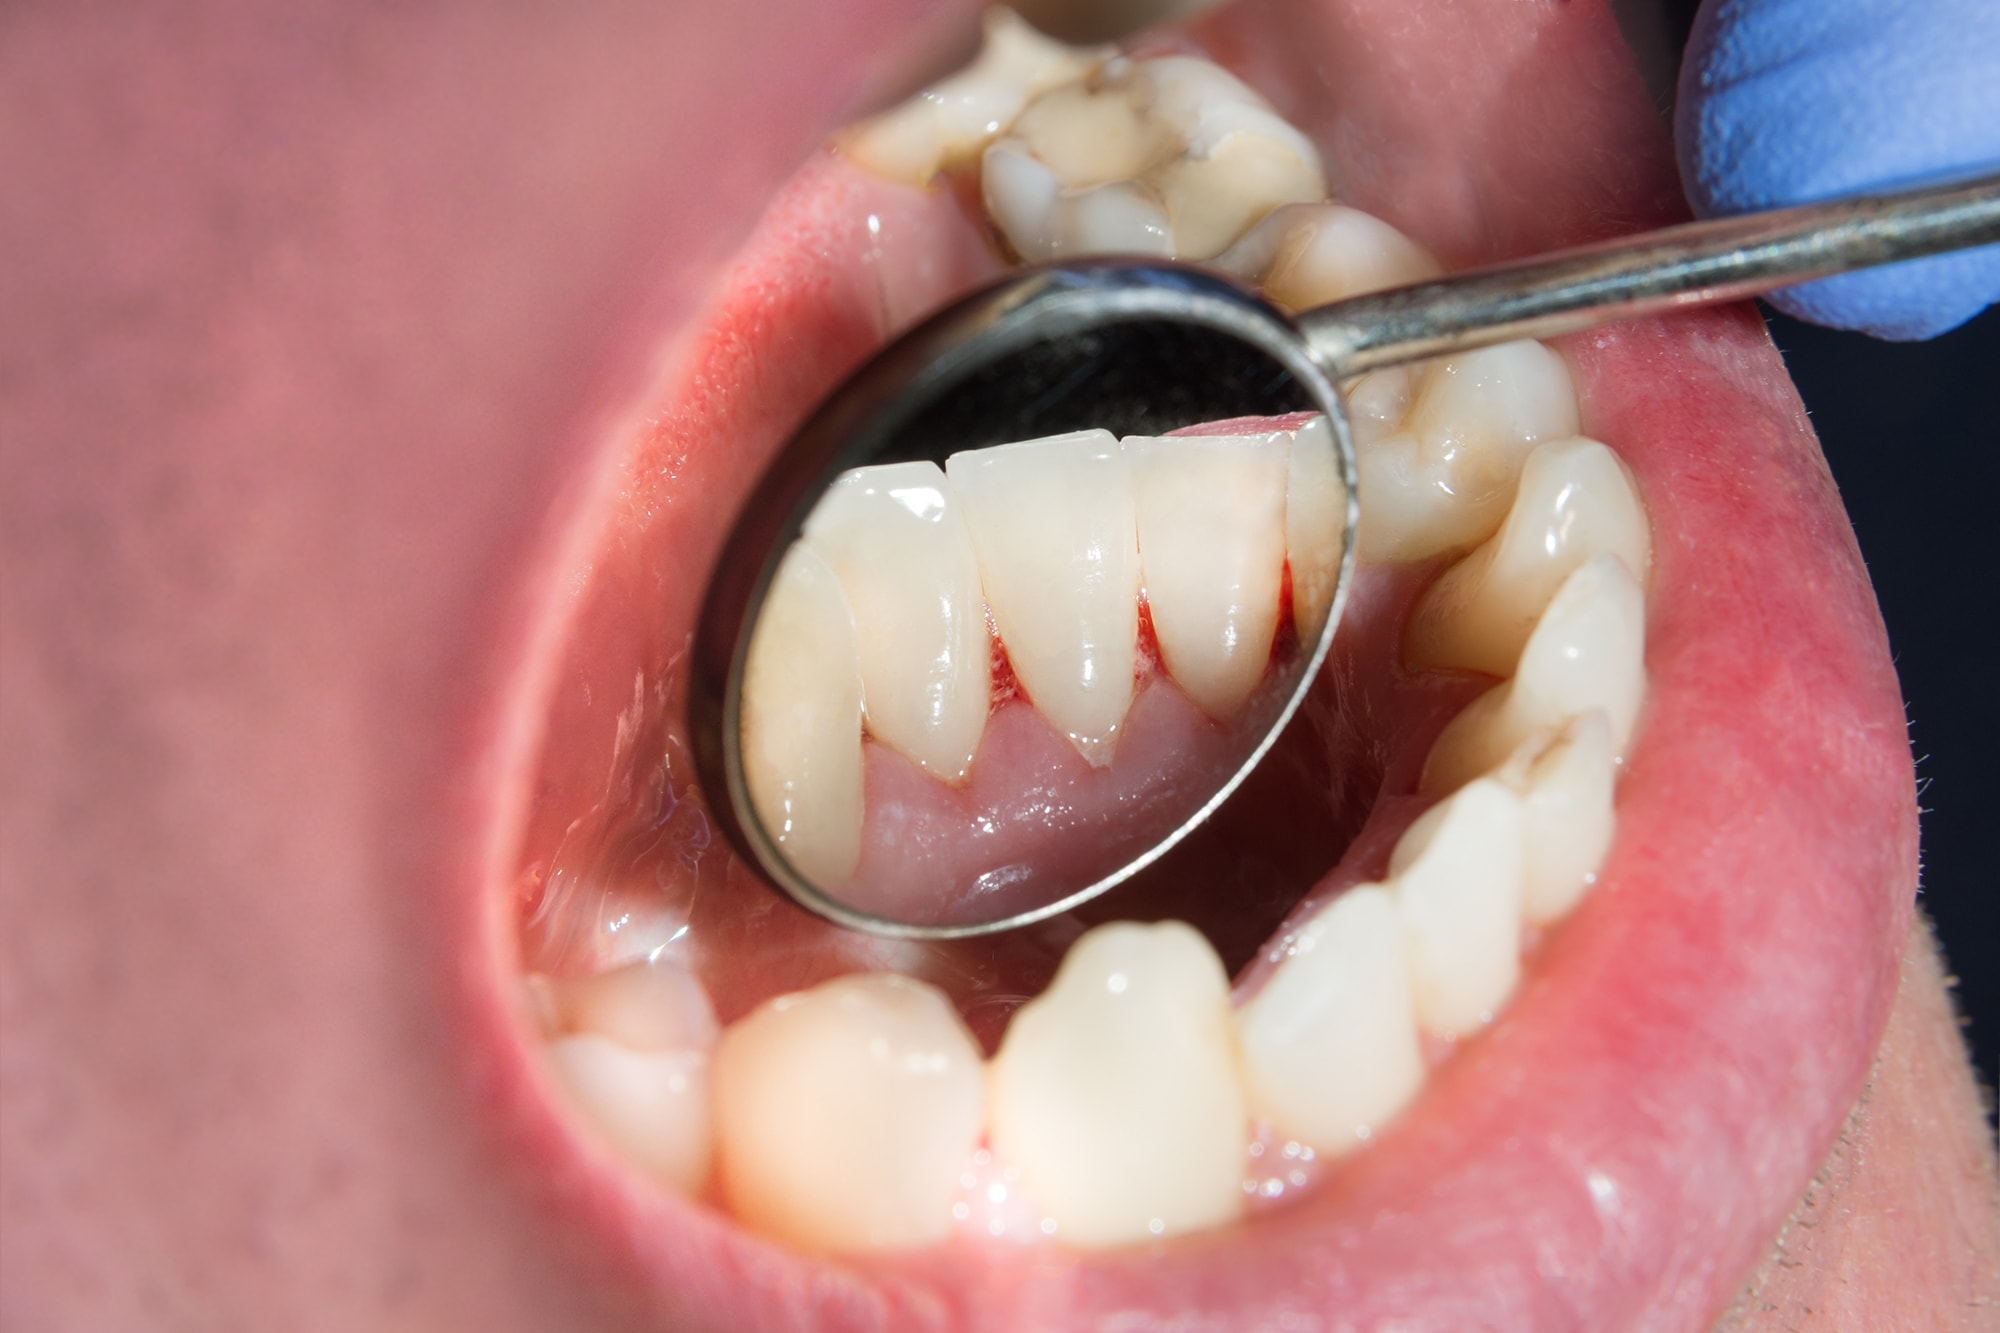 oral pathology at Encino Cosmetic Dentistry